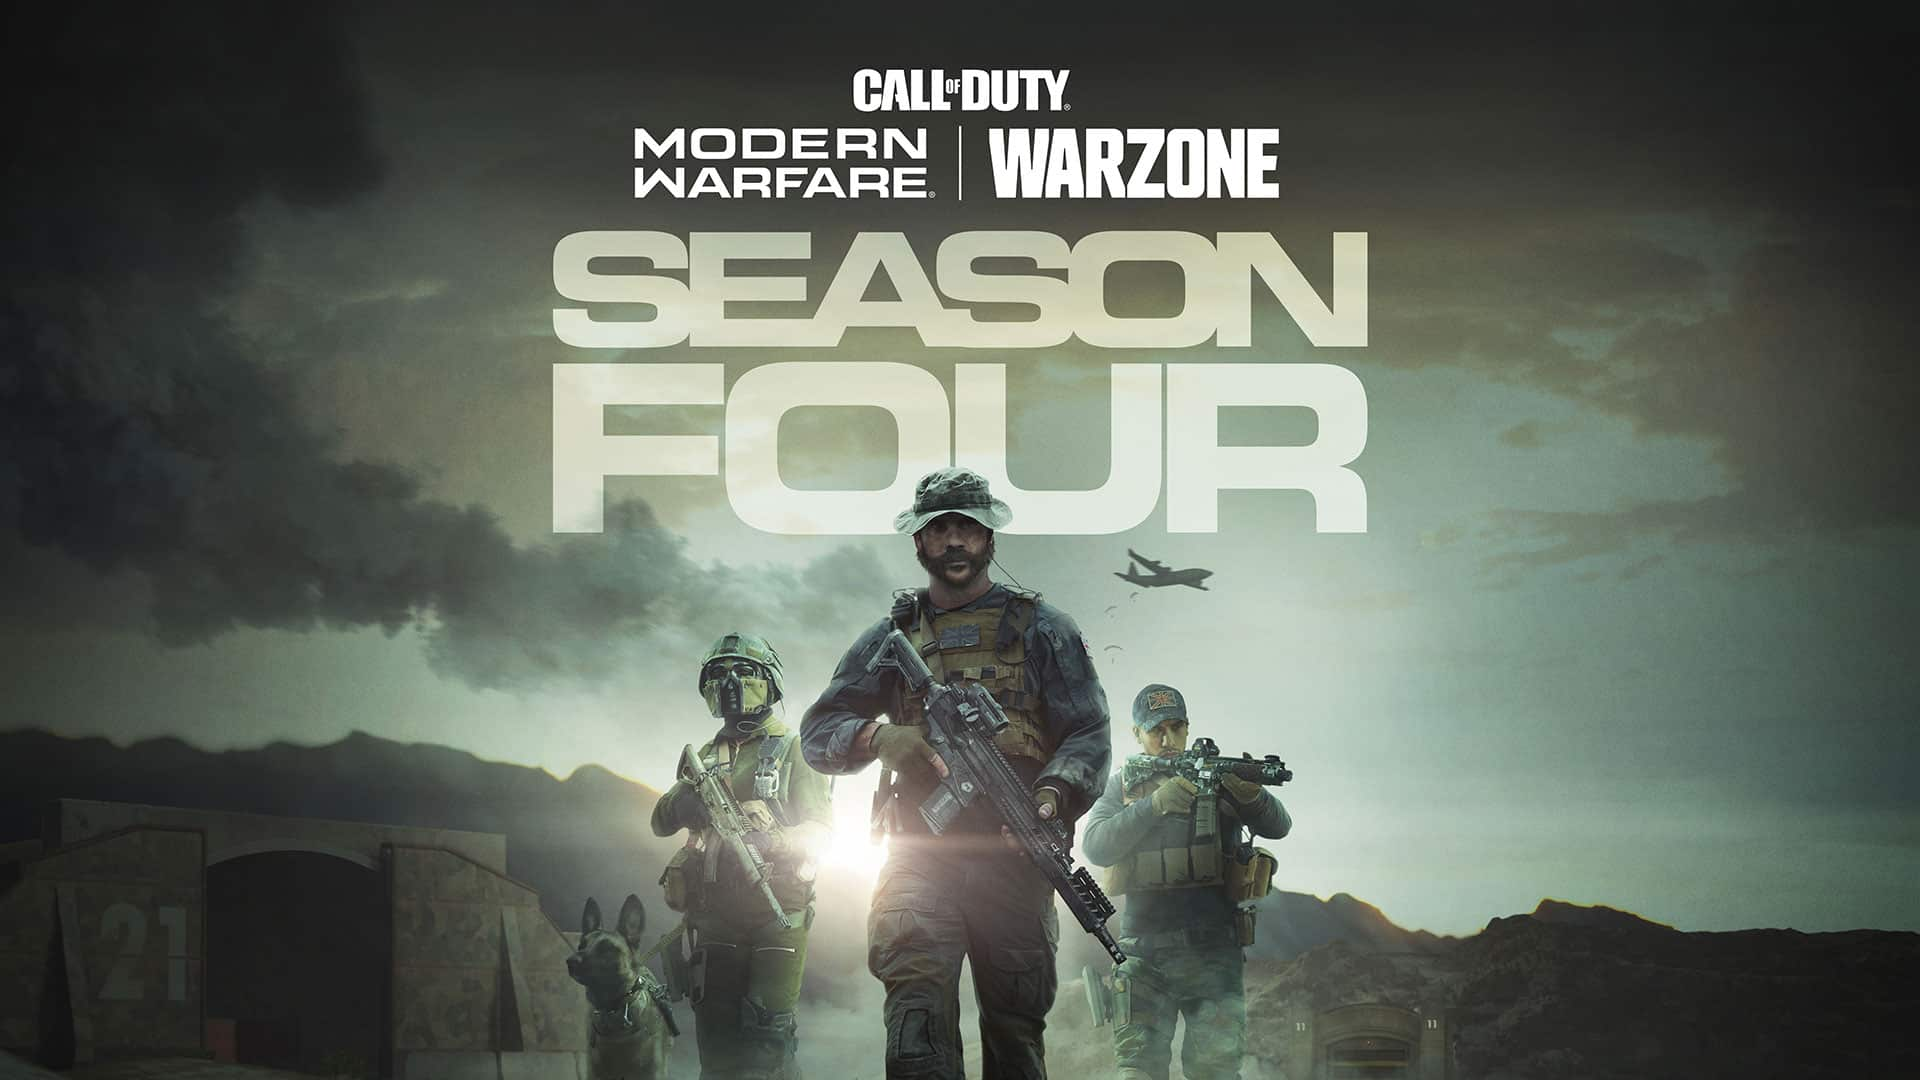 Season 4 Live Now In Modern Warfare And Warzone With Patch Update